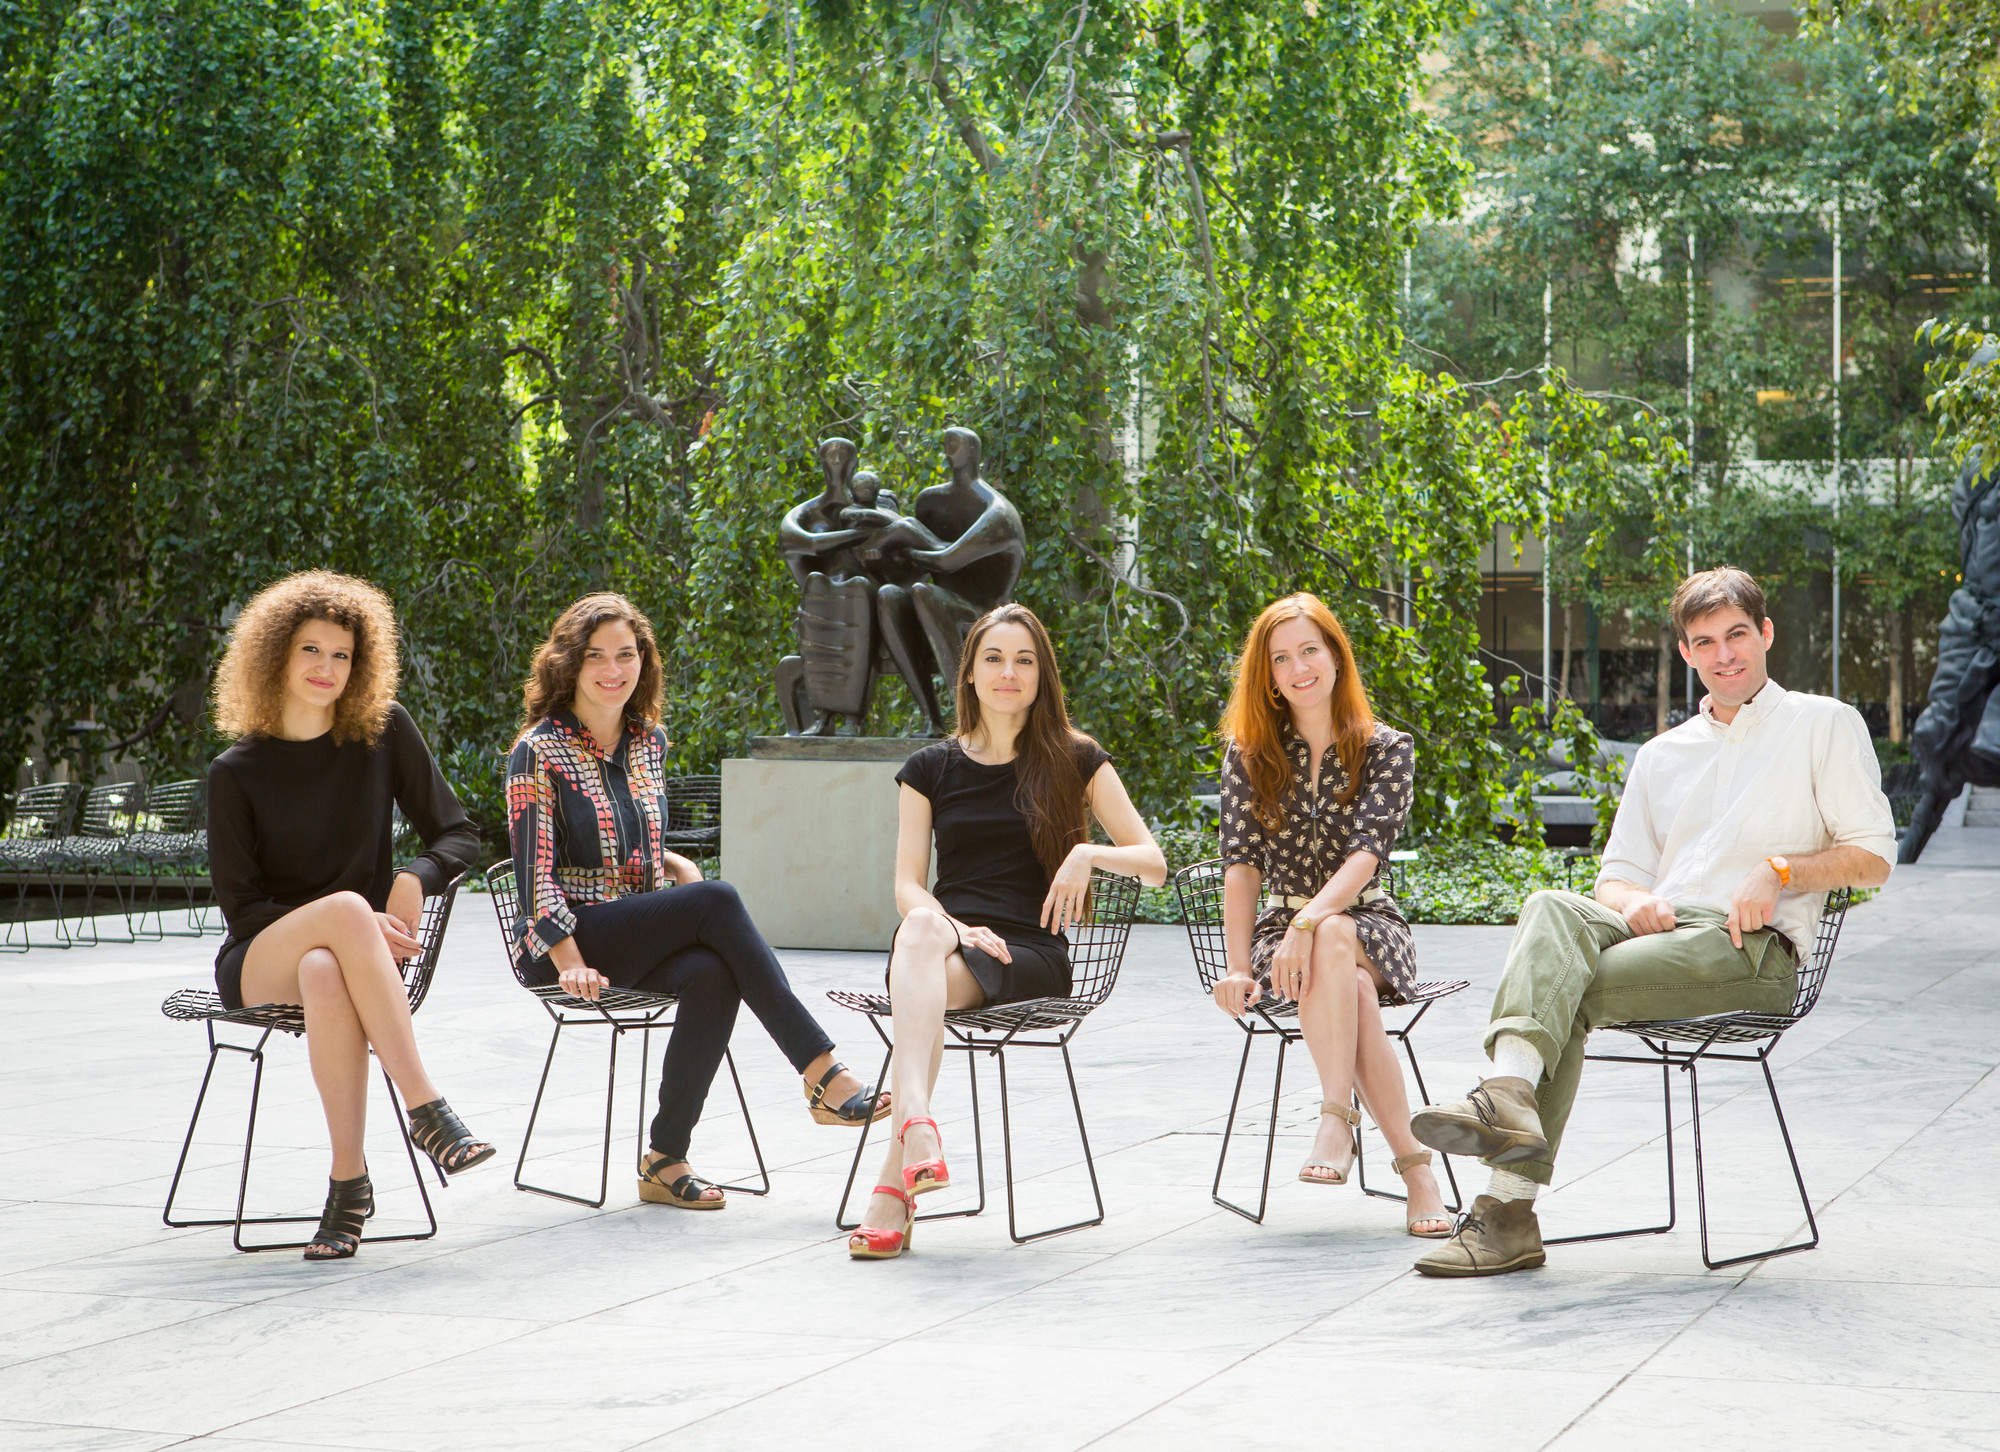 2014-15 MRC Fellows, from left: Rachel Silveri, Kristin Poor, Lauren Rosati, Rebecca Lowery, and Sam Sackeroff. Photo: Marcin J. Muchalski, Diamond Shot Studio